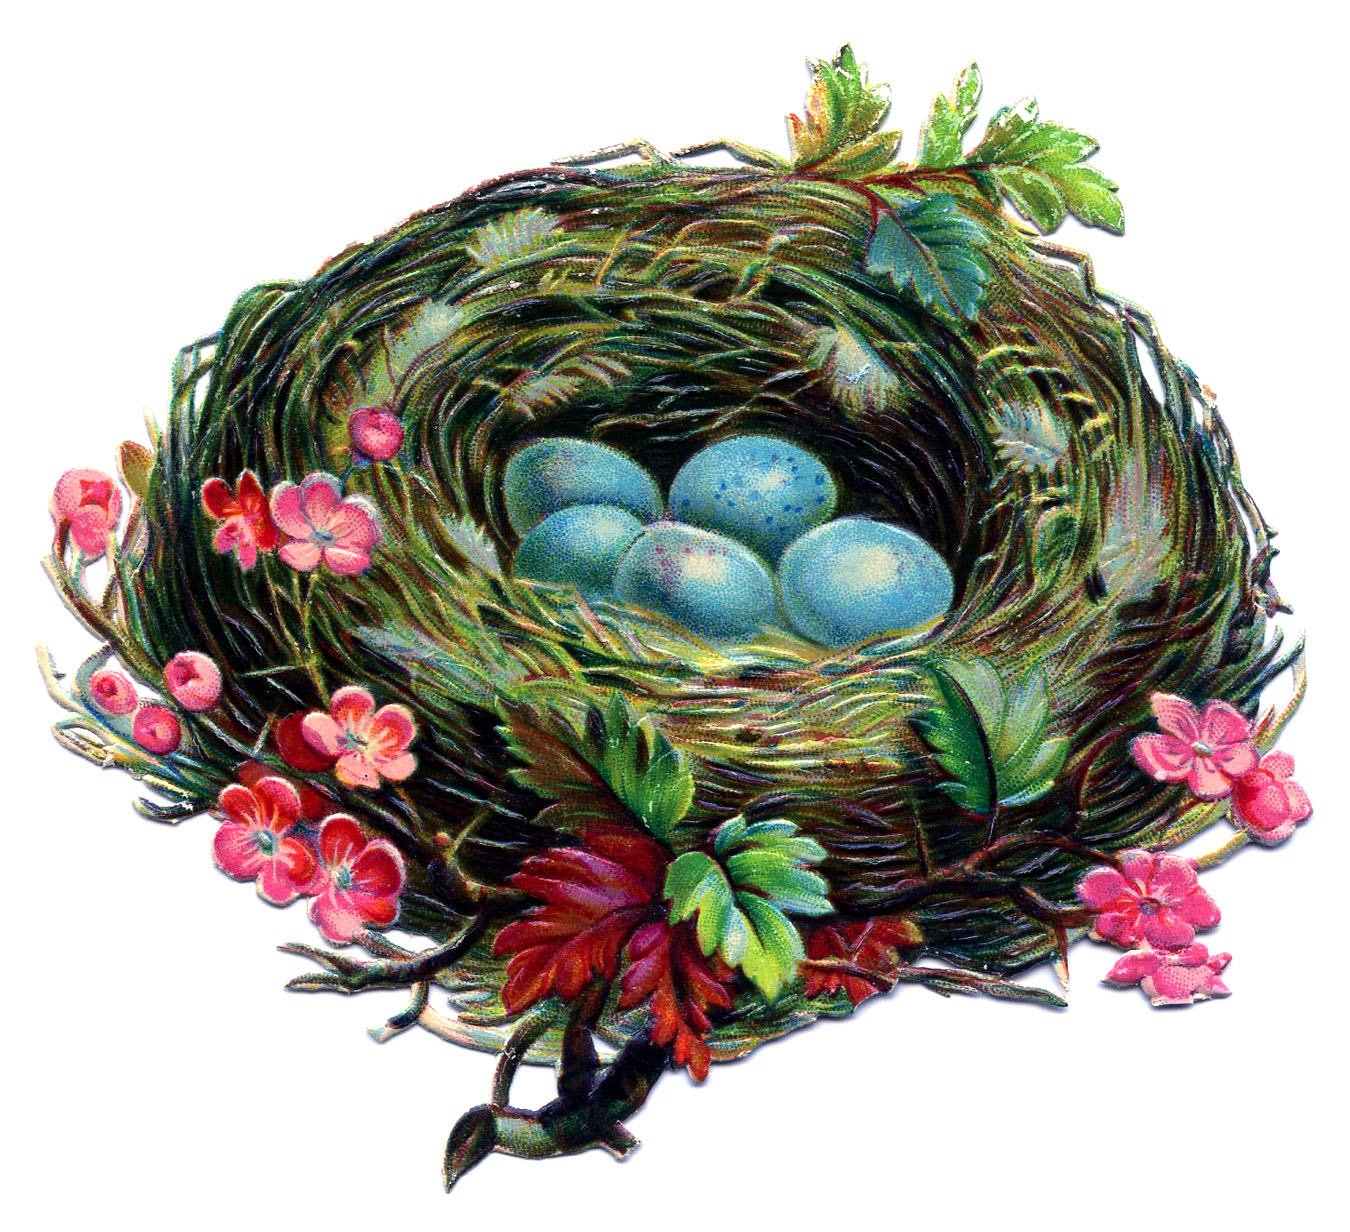 Pretty Nest With Blue Eggs